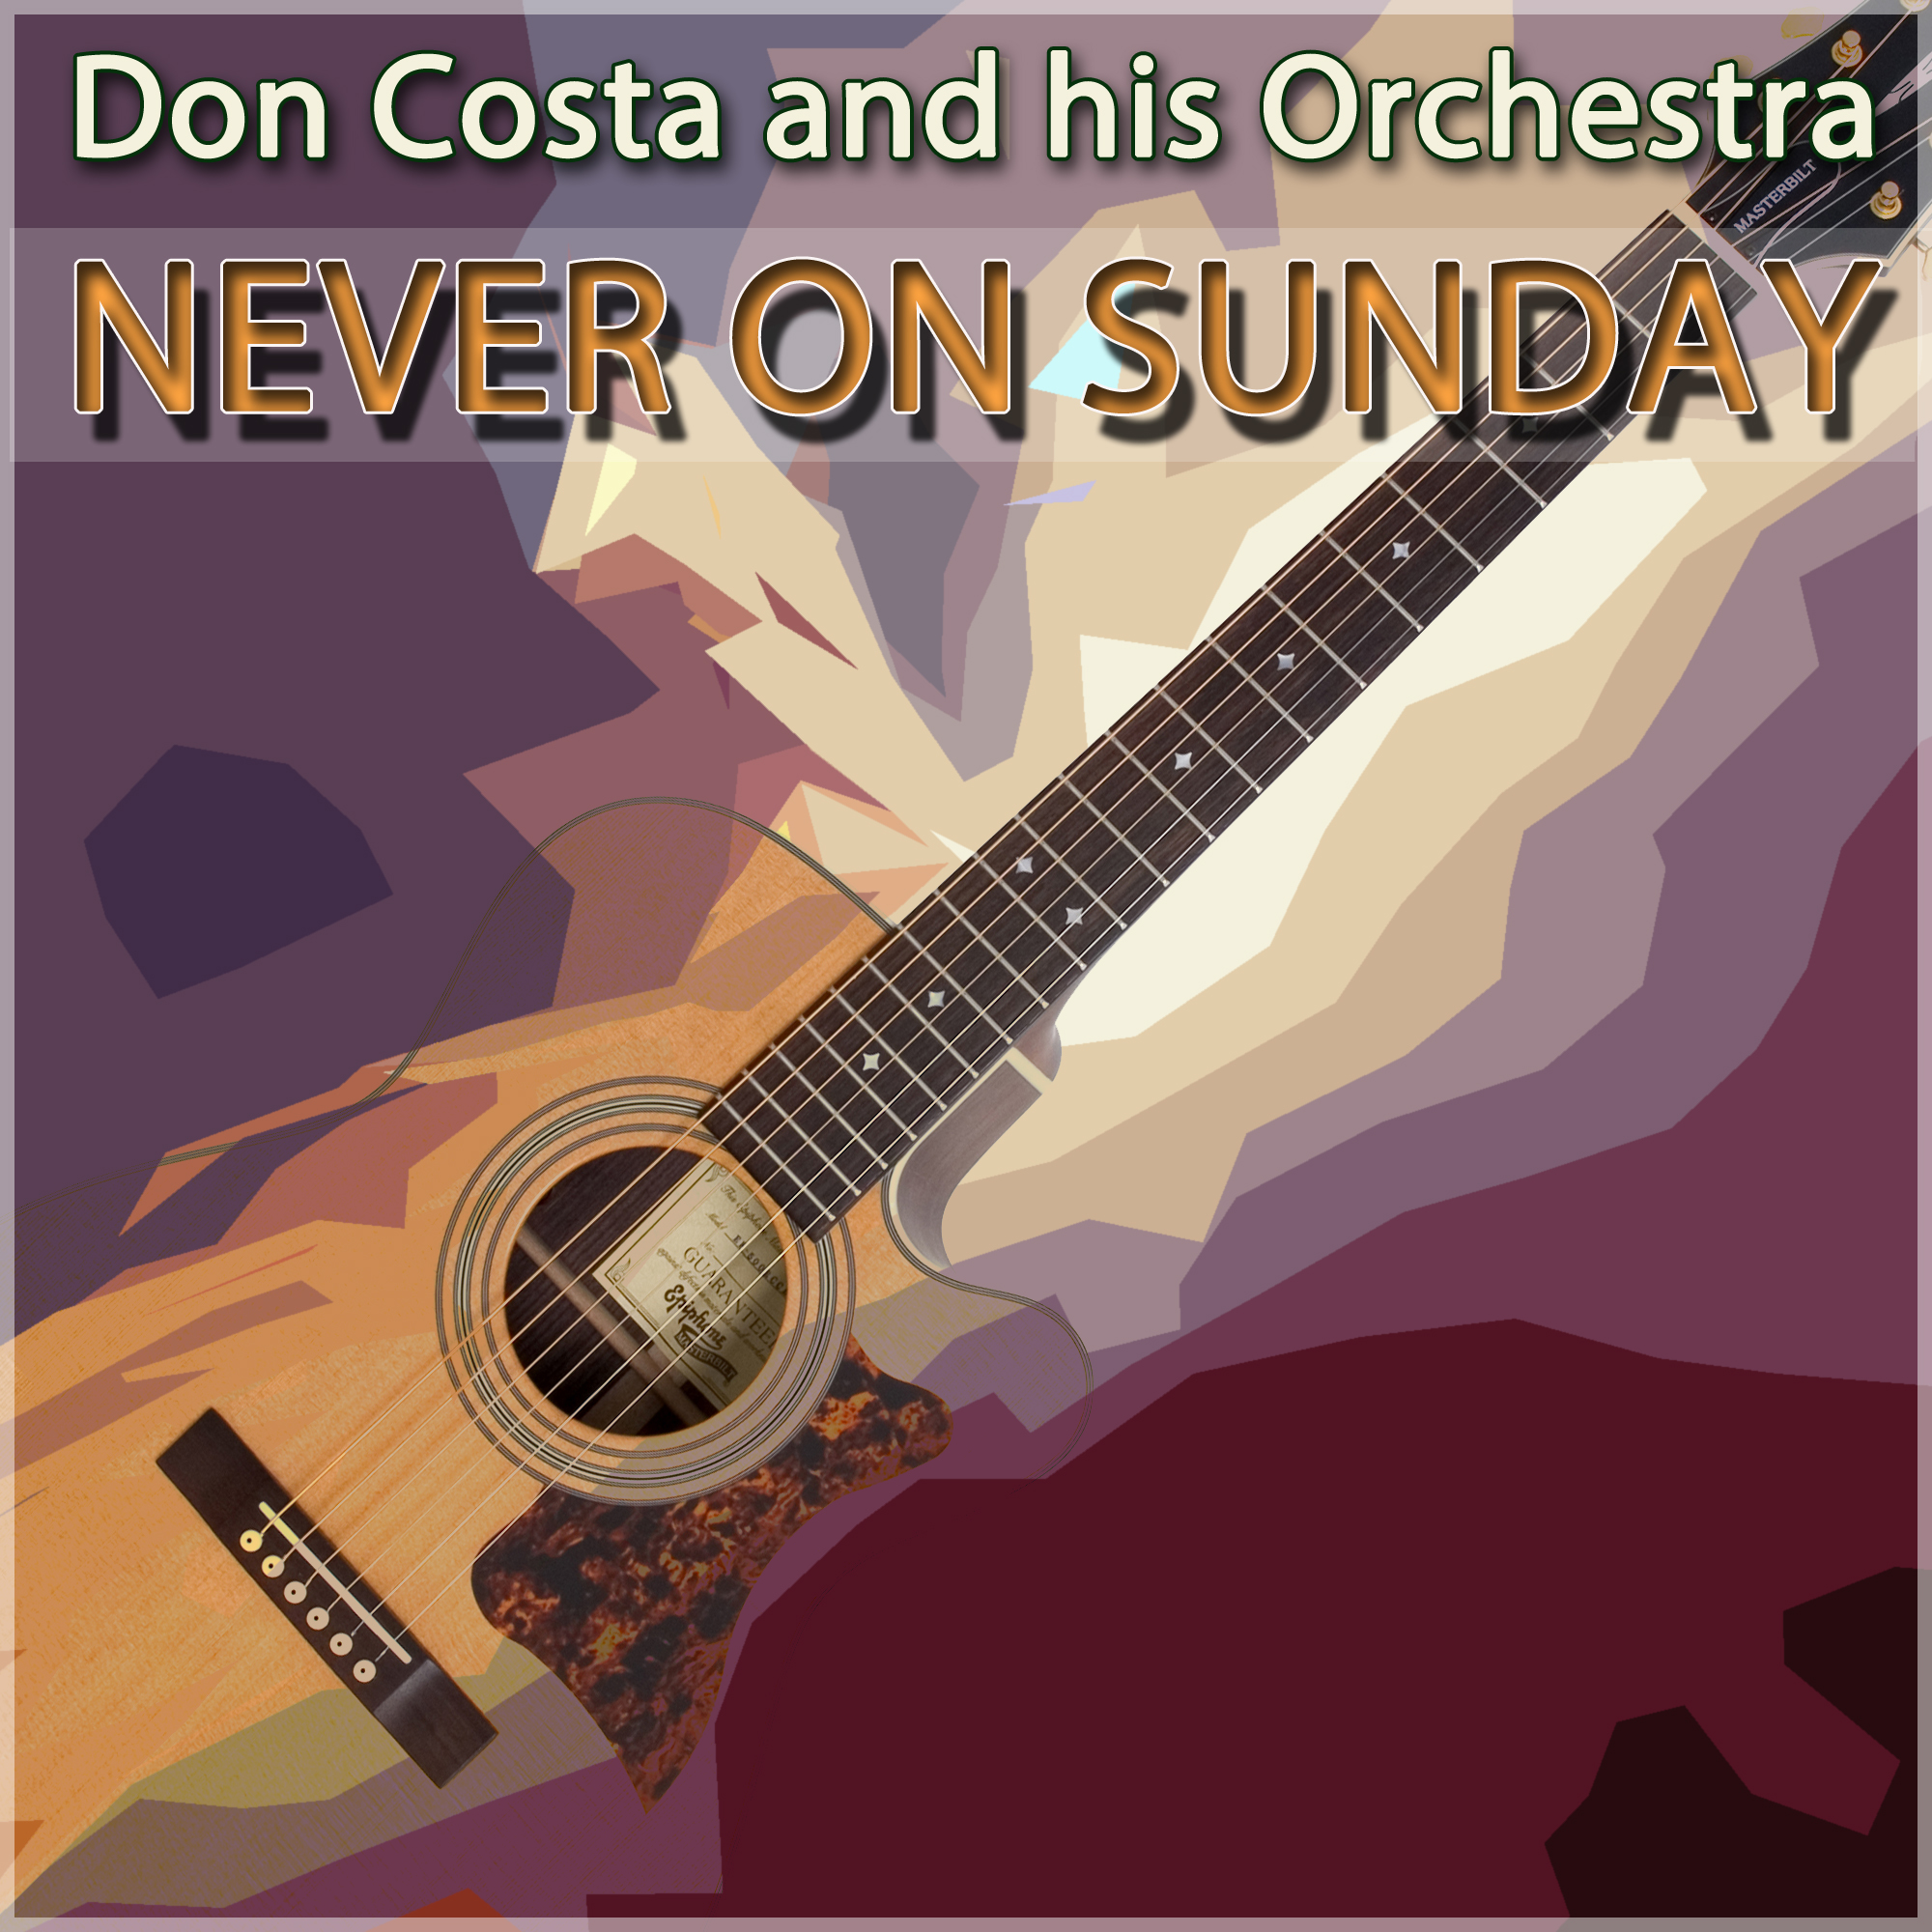 Never on Sunday - Don Costa and his Orchestra